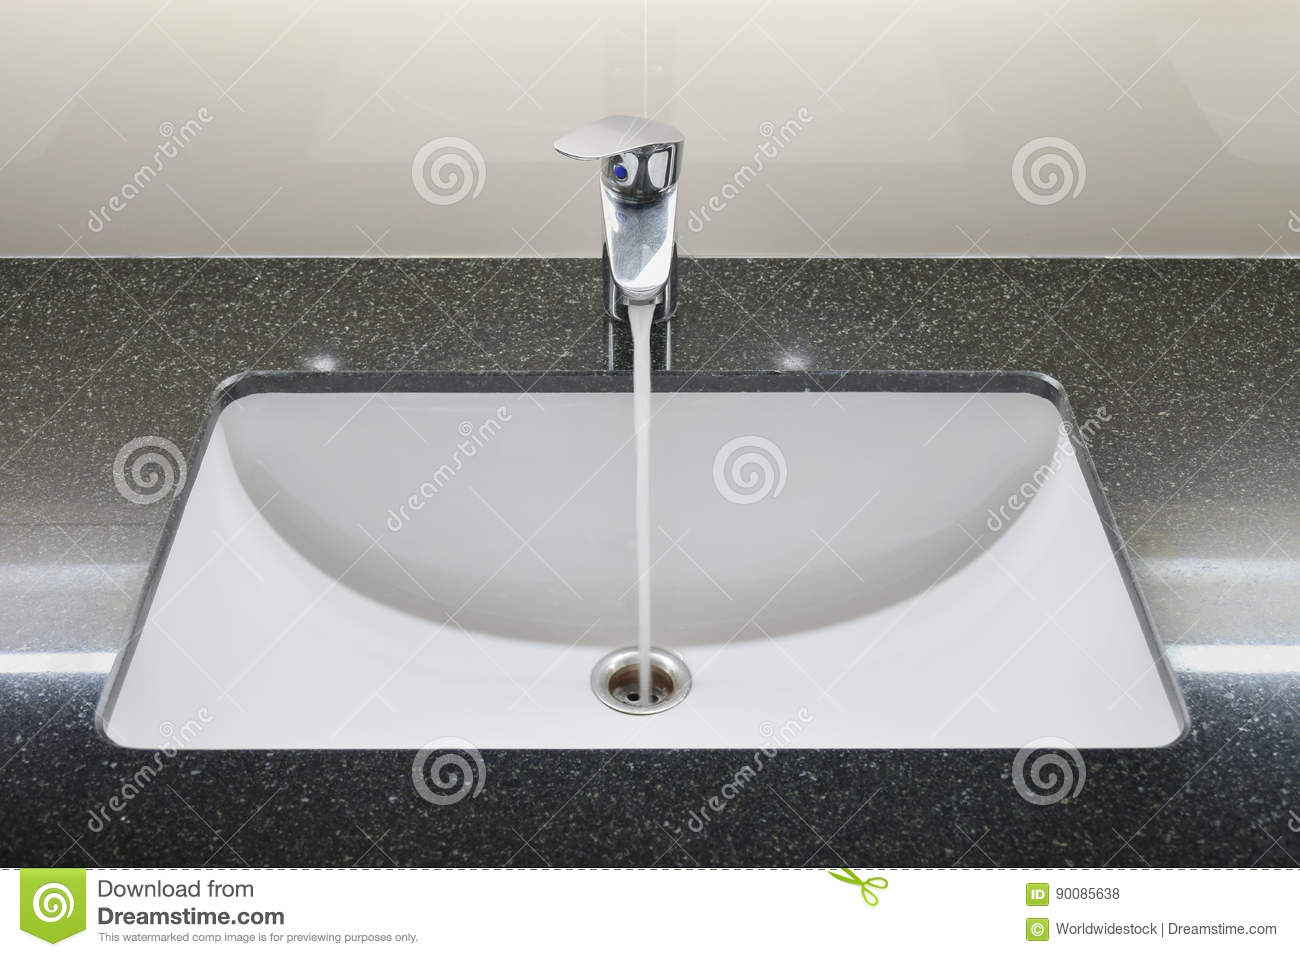 Modern Style Wash Basin With Faucet Stock Photo Image Of Chrome Equipment 90085638